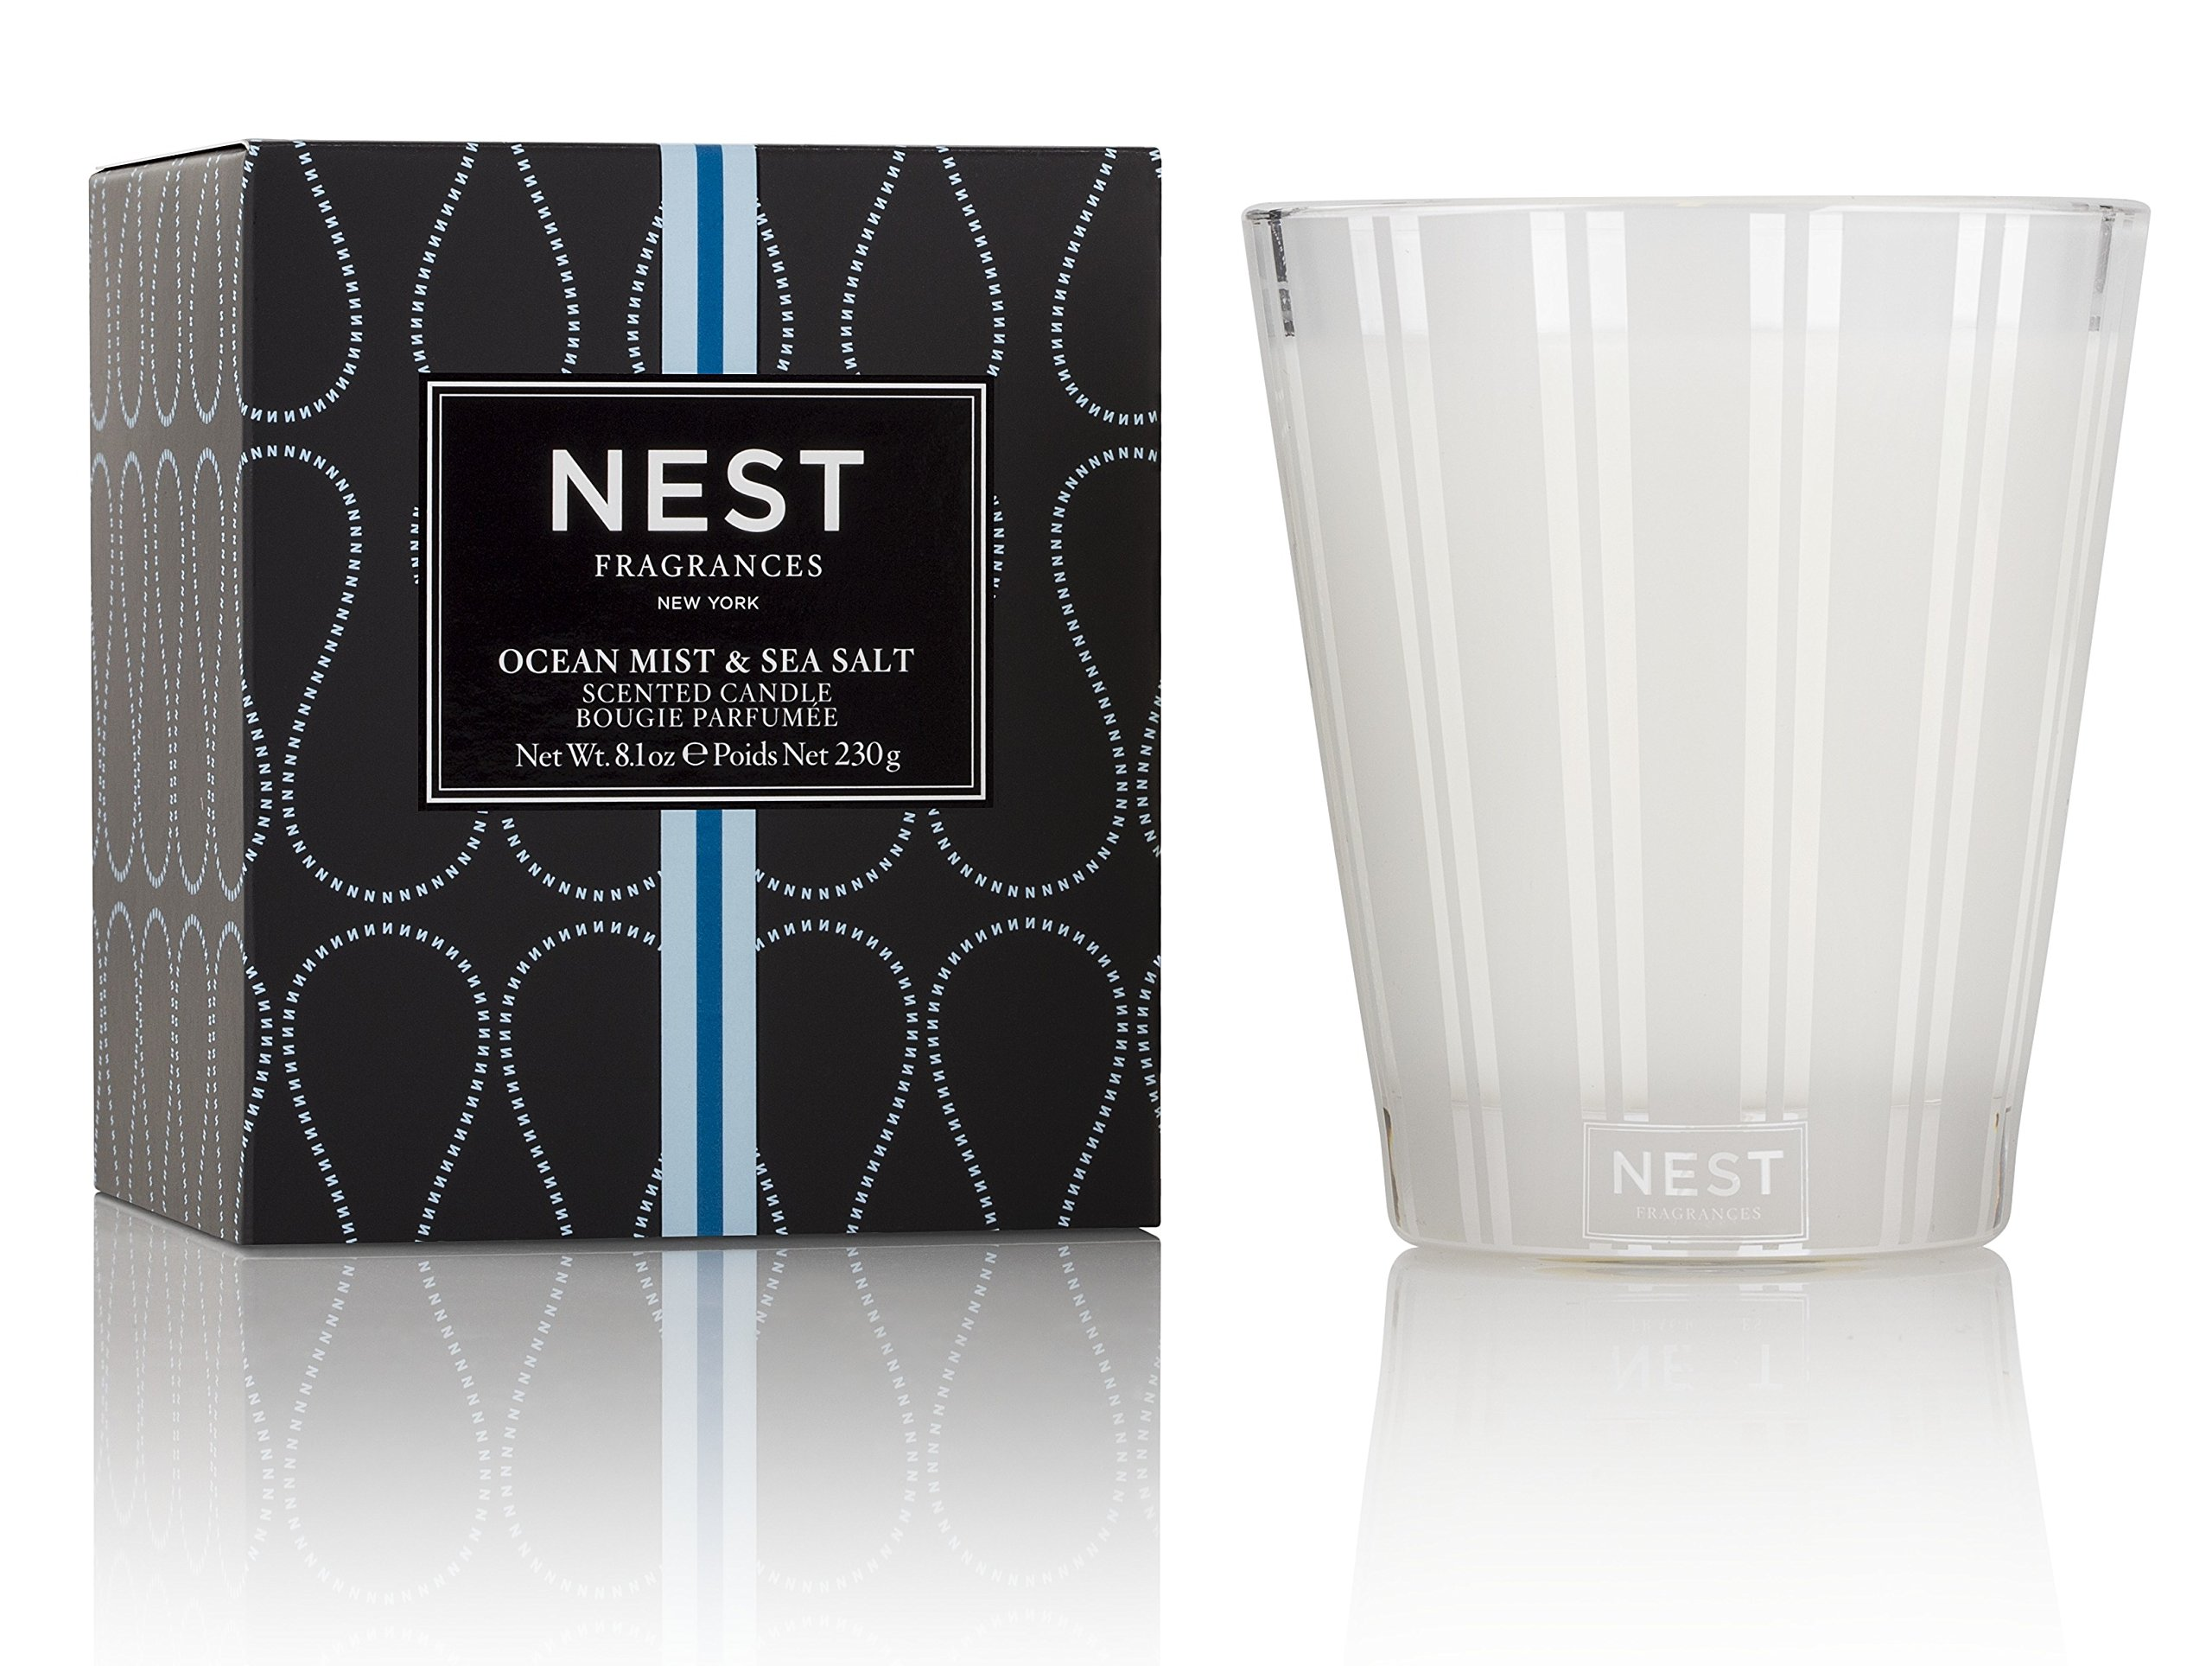 NEST Fragrances Classic Candle- Ocean Mist & Sea Salt, 8.1 oz